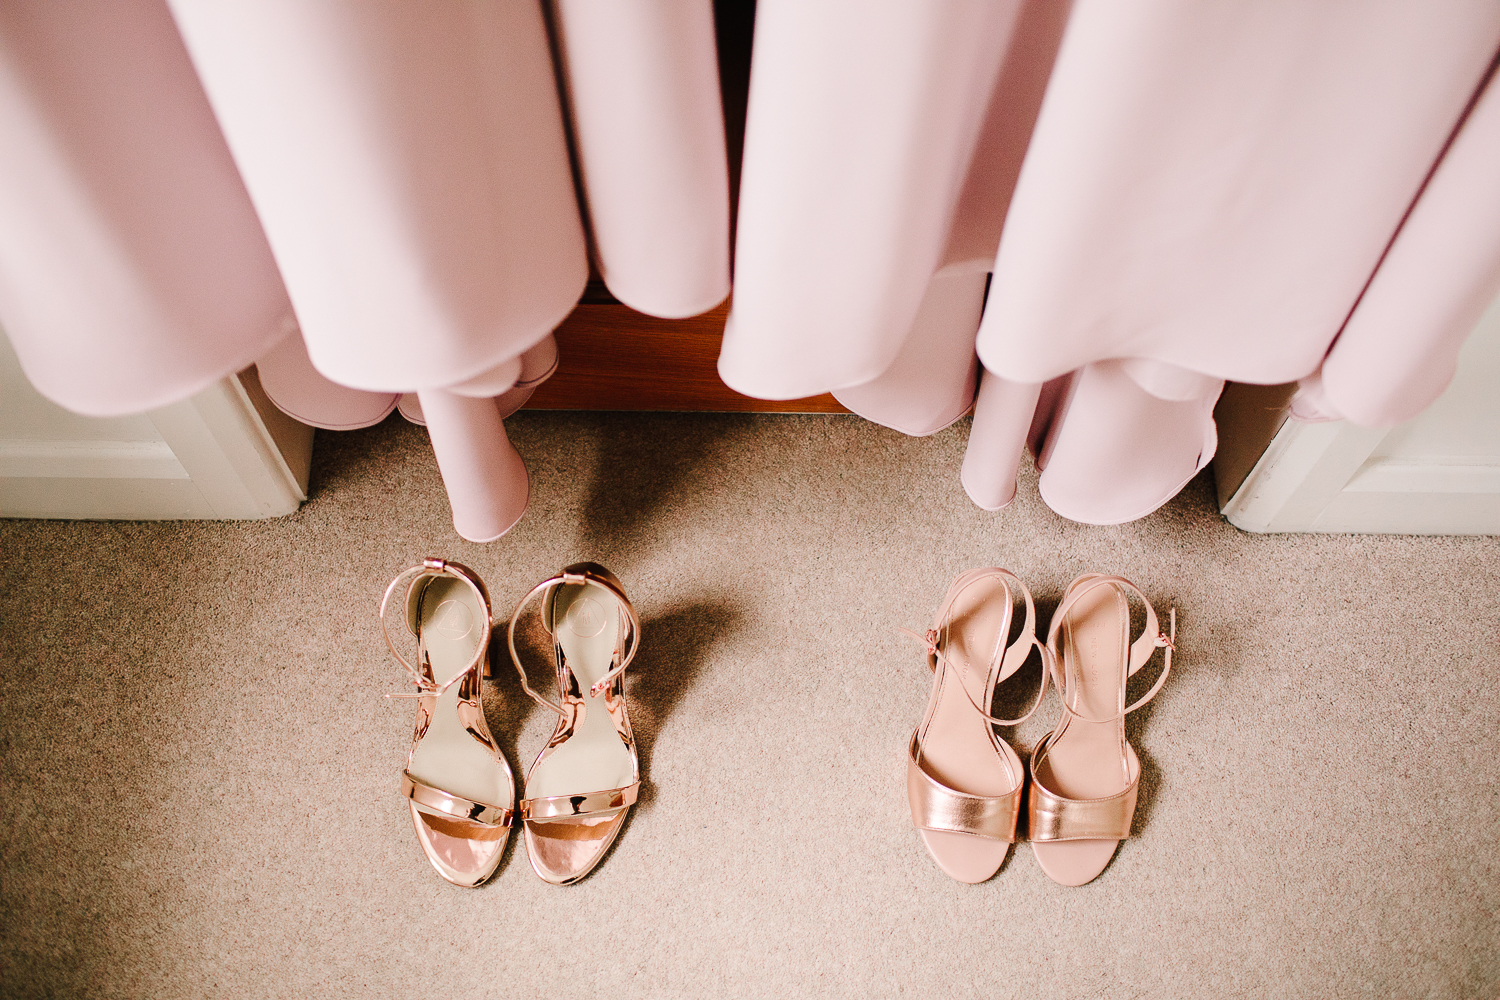 The_Carriage_Rooms_Wedding_Sharon_Kee_Photography